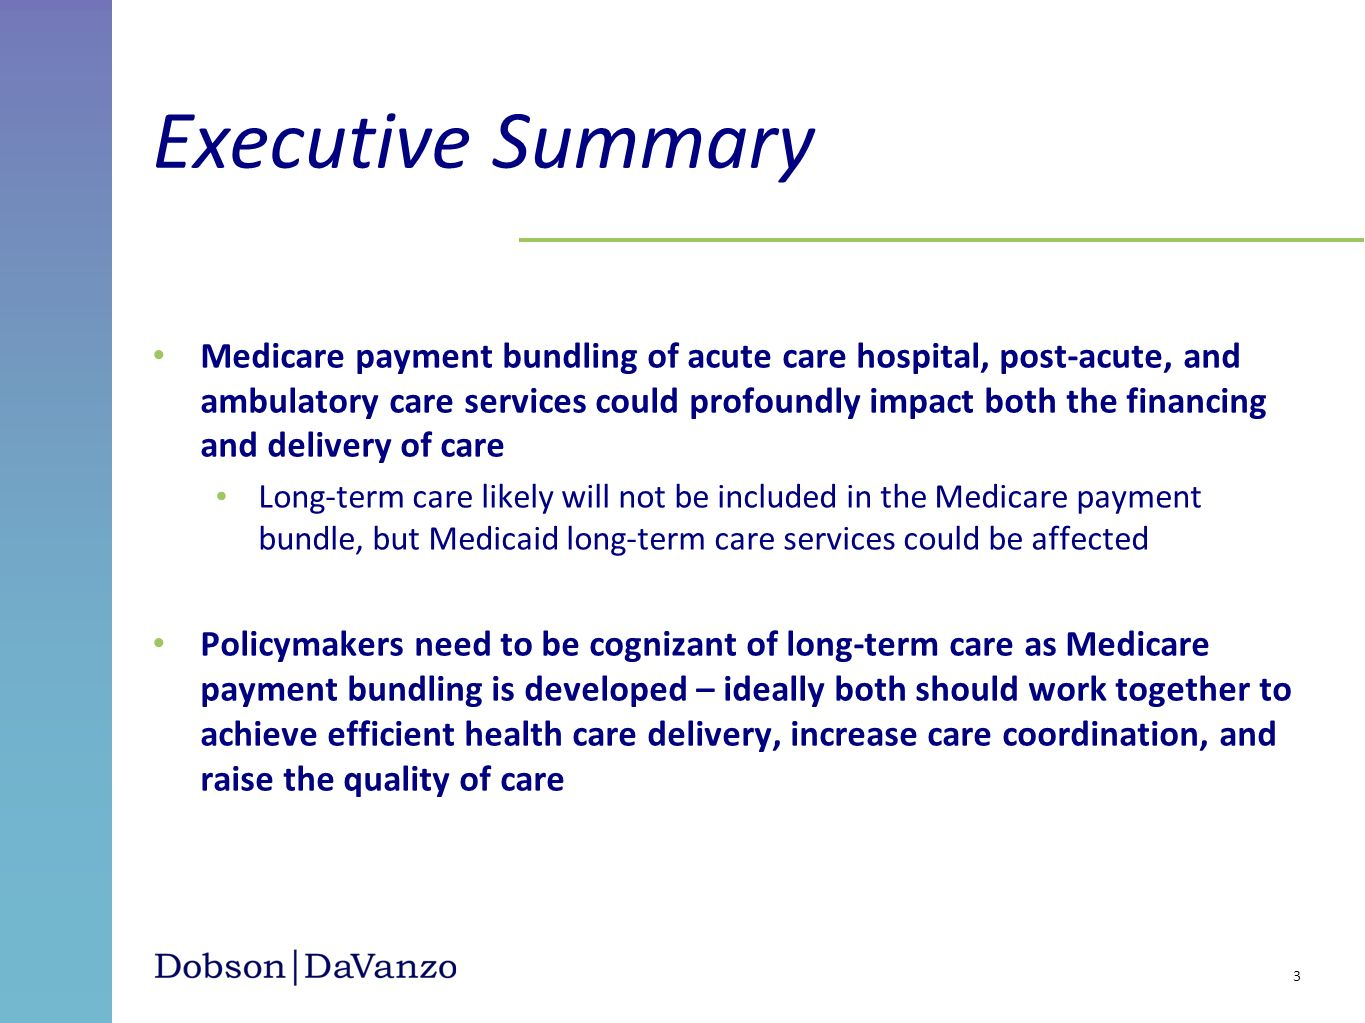 Medicare payment bundling of acute care hospital, post-acute, and ambulatory care services could profoundly impact both the financing and delivery of